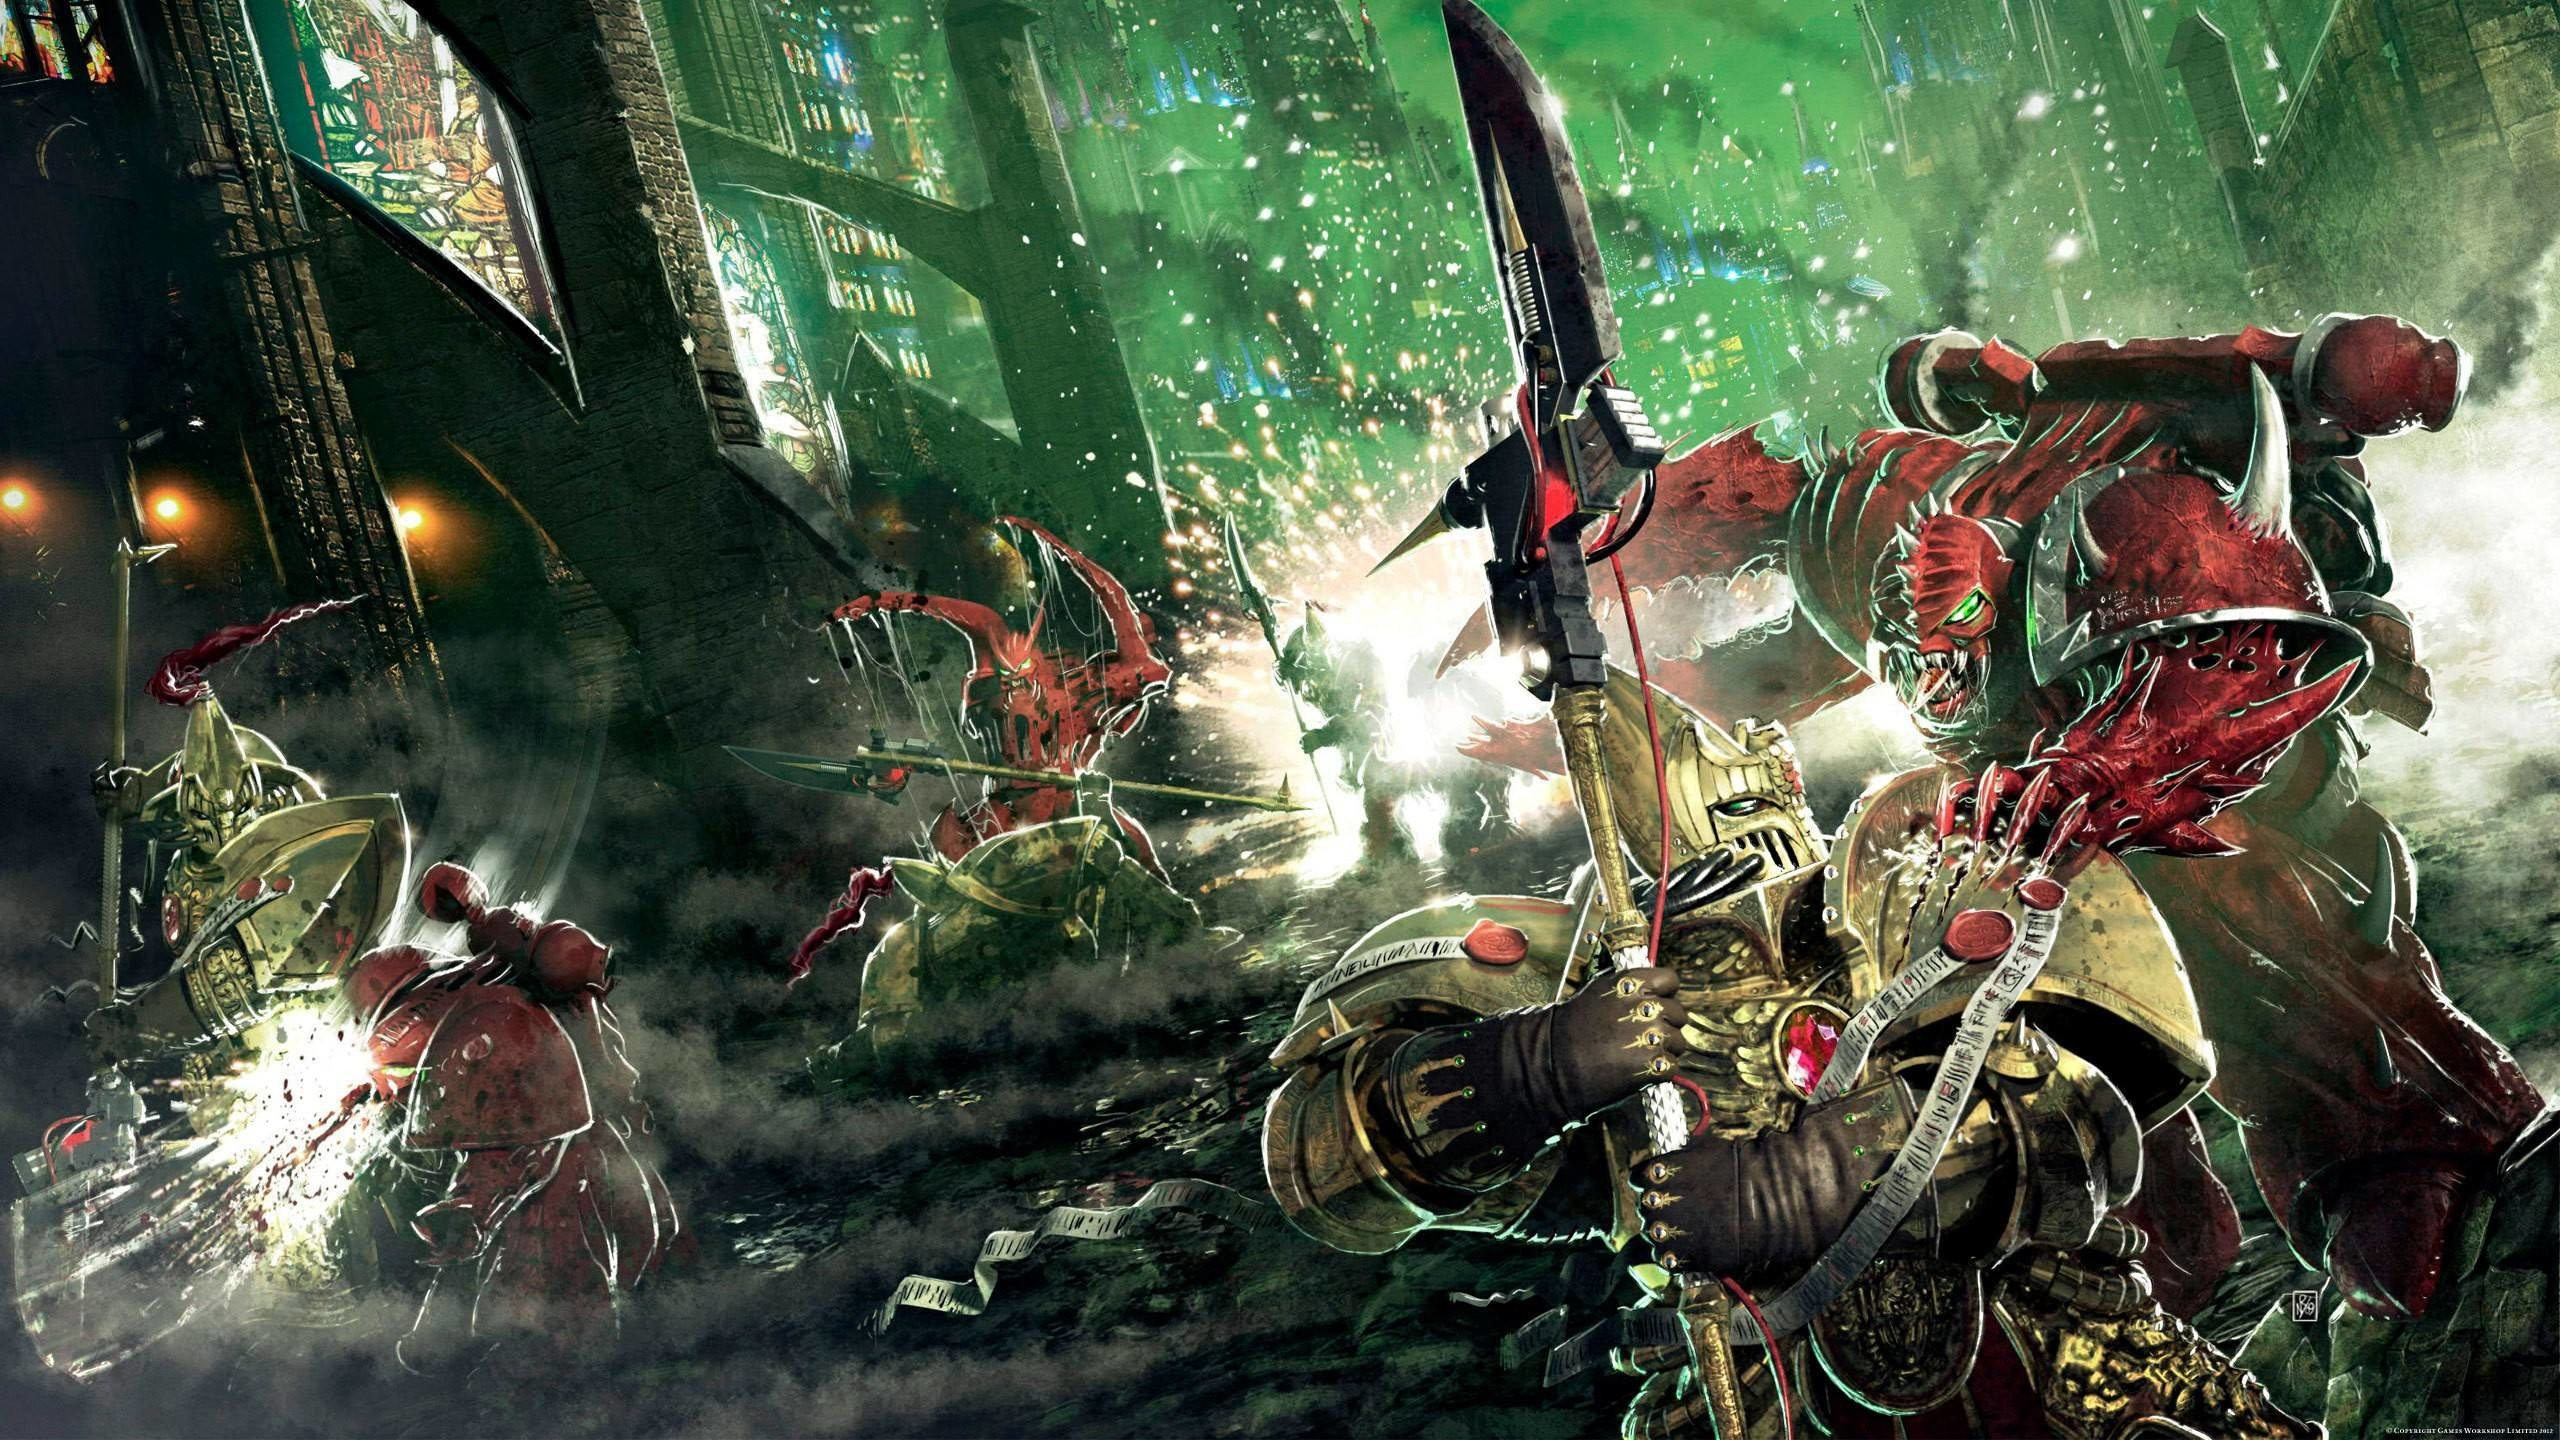 2560x1440 Mutant Chaos Space Marine Chaos Space Marine wallpaper |  .